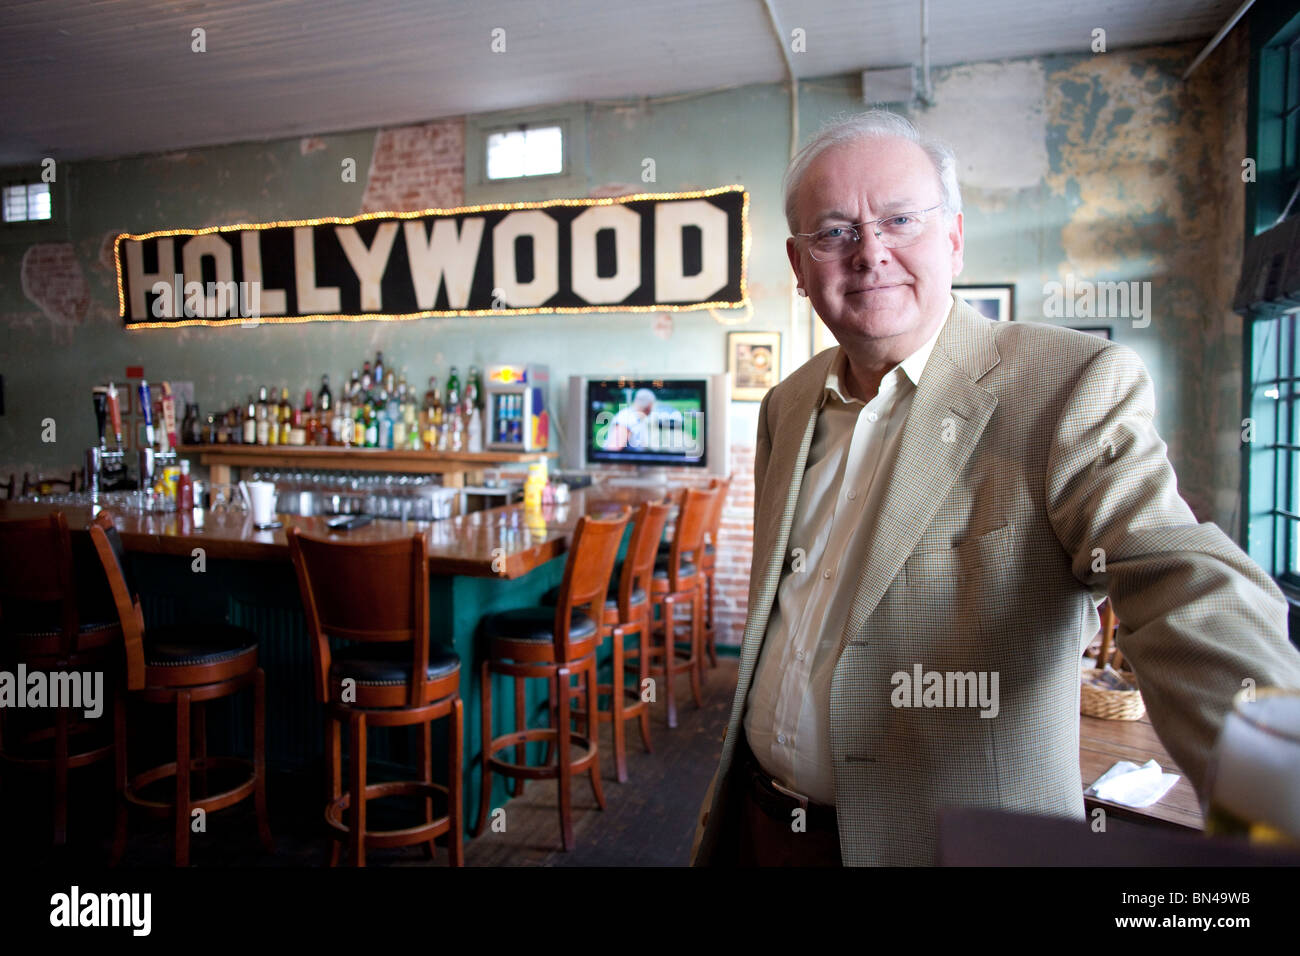 Portrait of Mike Young, owner of Hollywood Cafe in Hollywood, Mississippi. - Stock Image